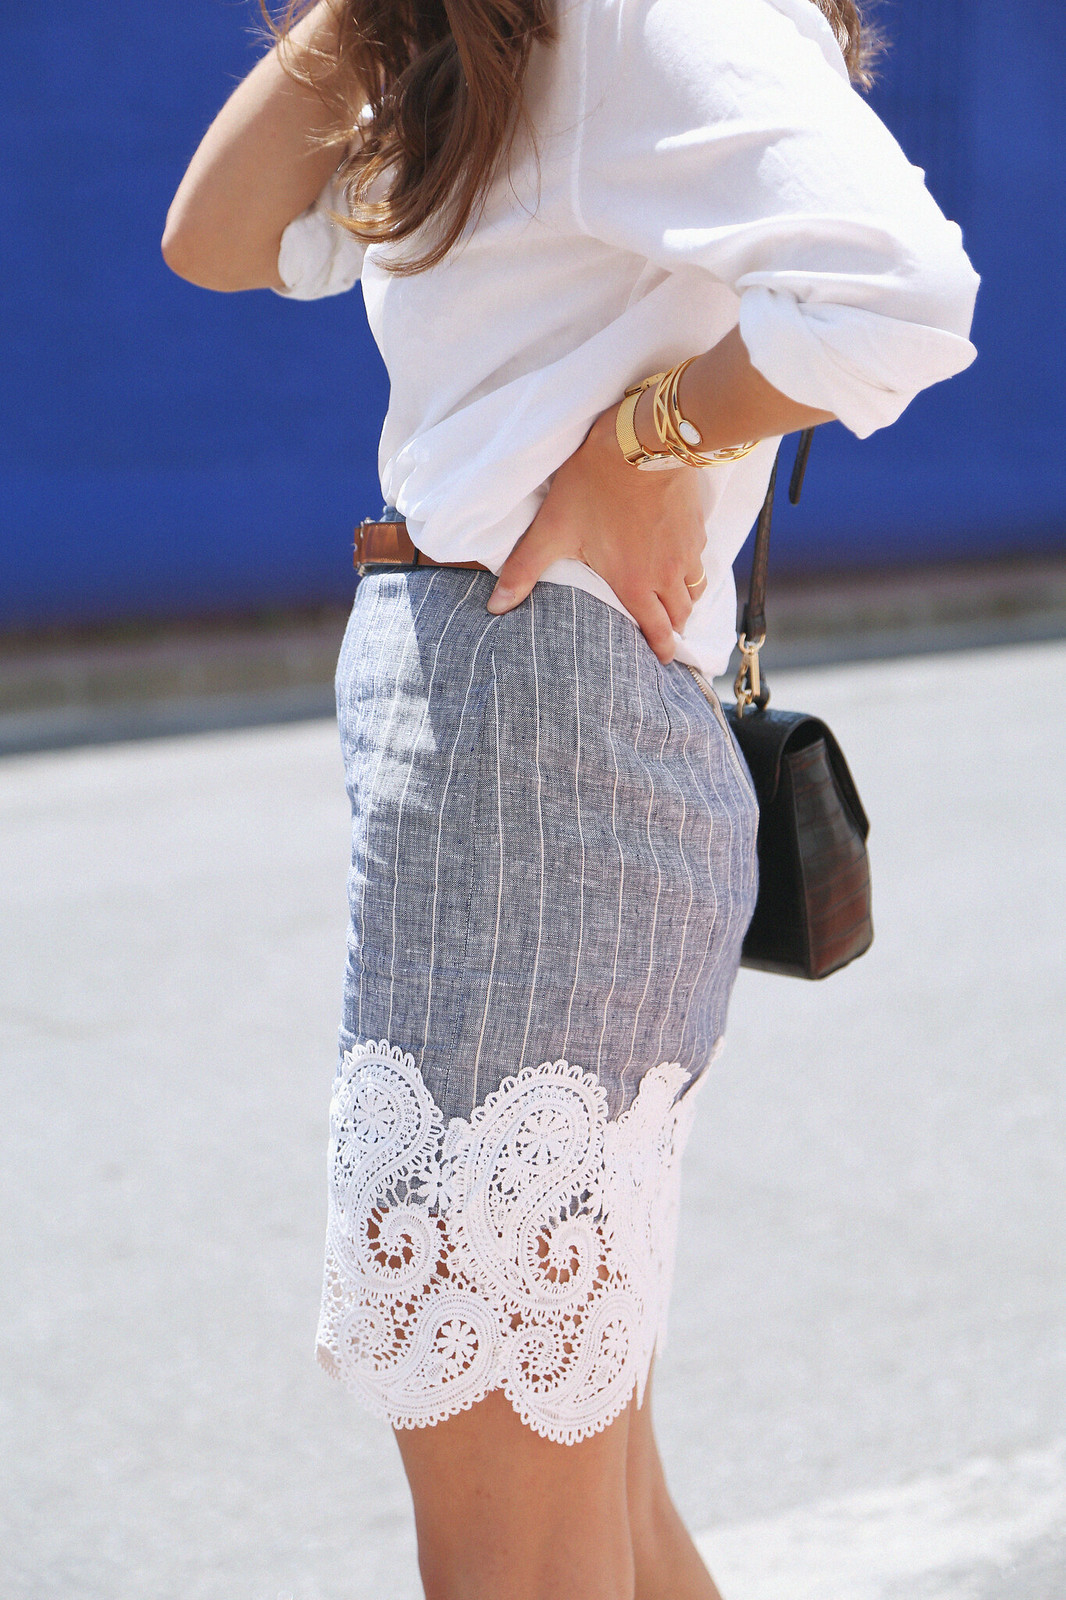 jessie chanes seams for a desire pink long skirt white off shoulder top gucci bag-13